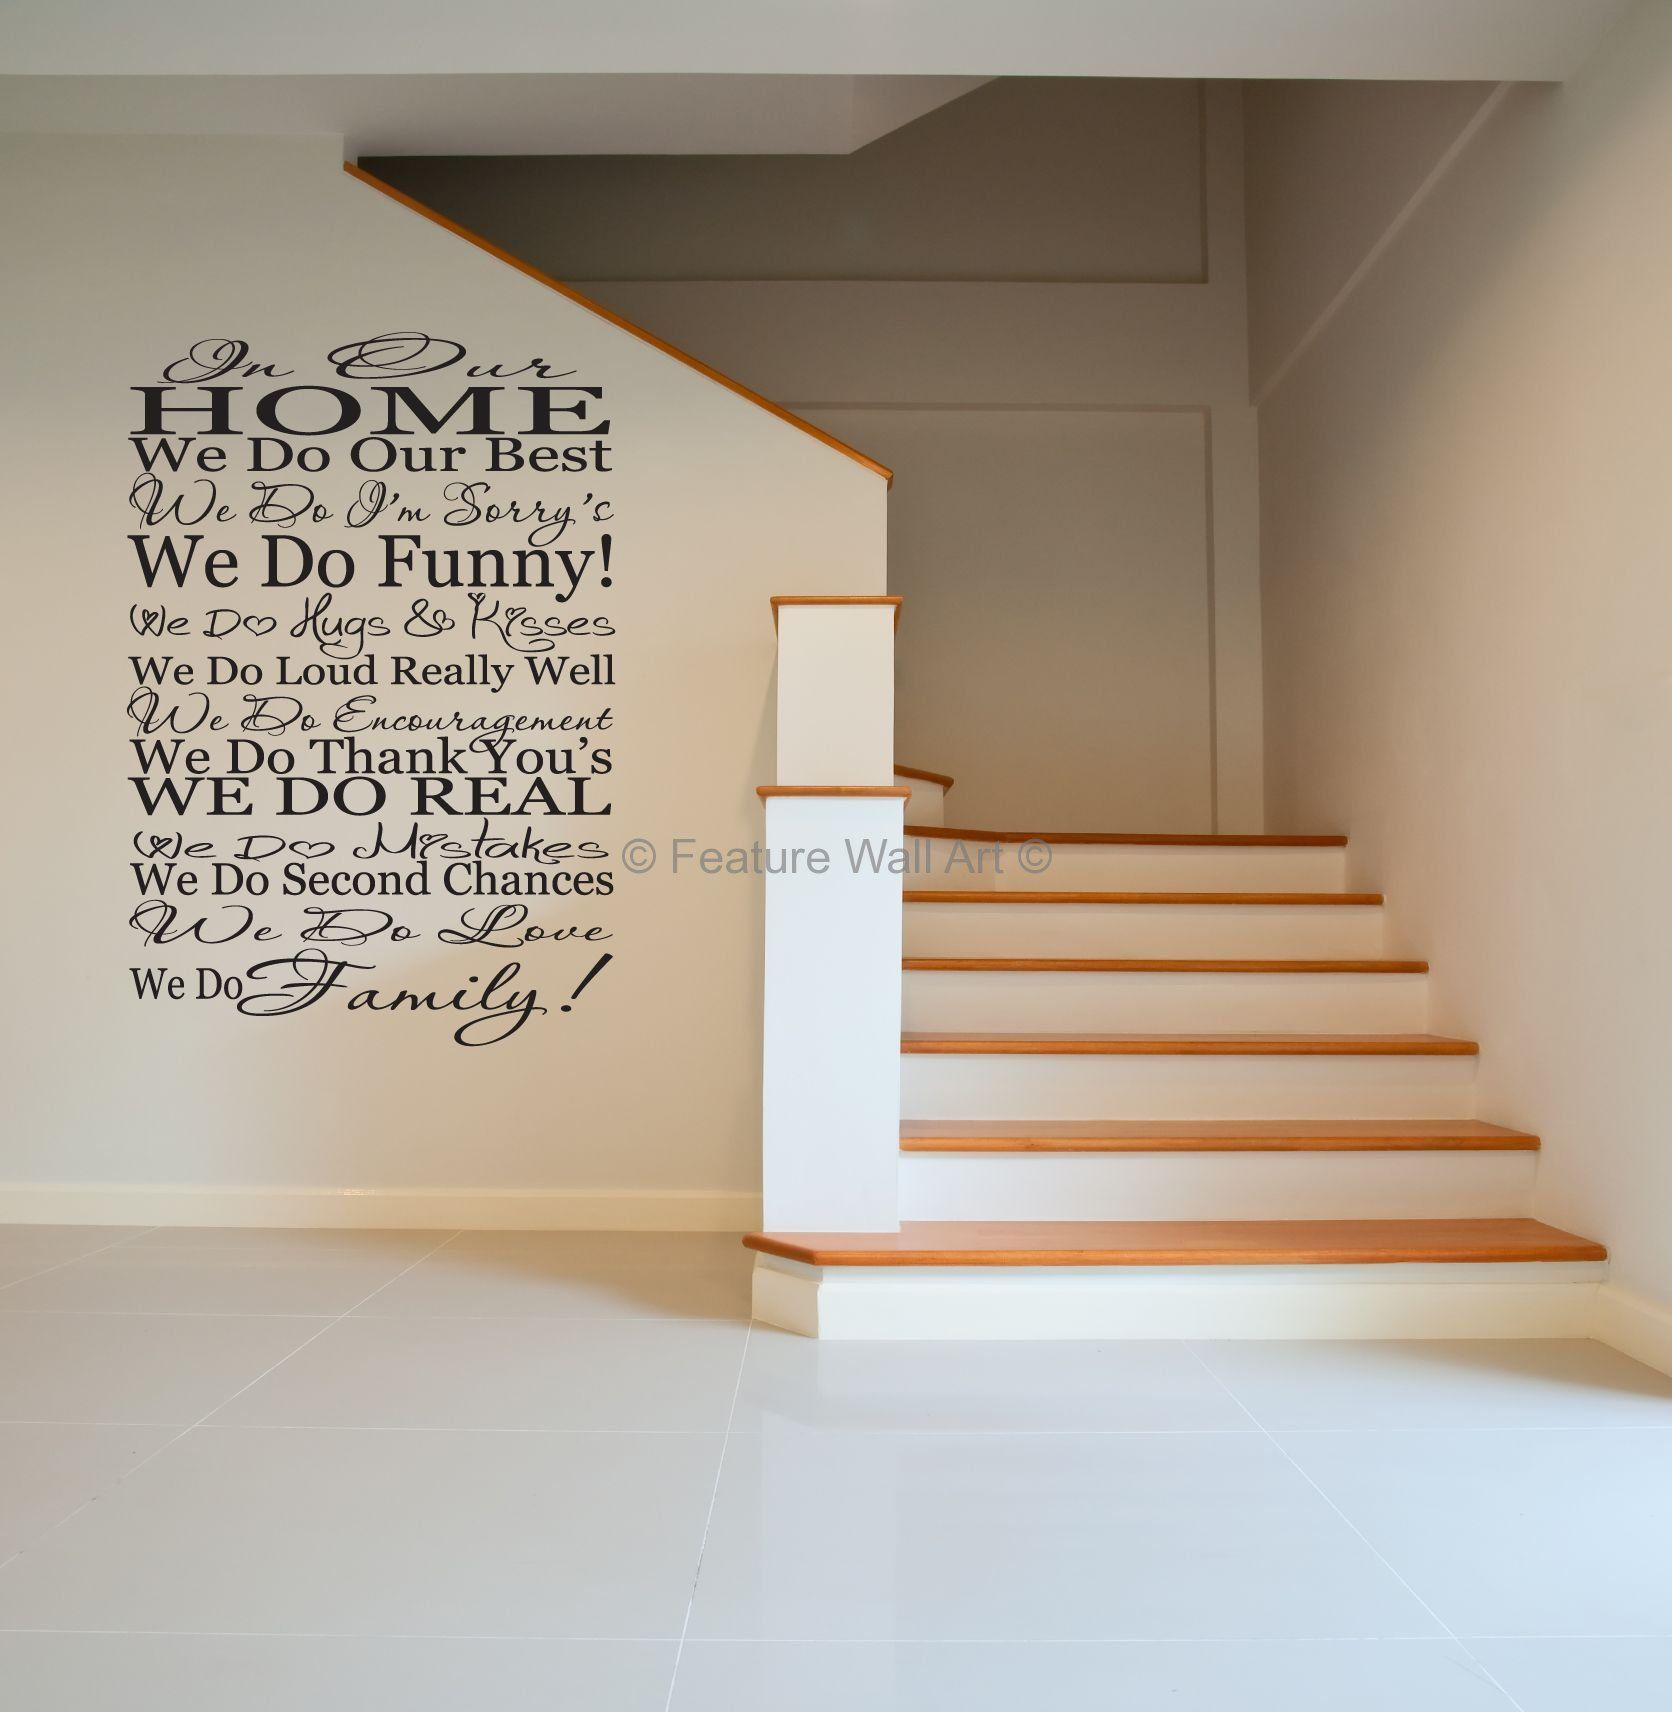 Family Quotes Wall Decals We Do Family Vinyl Art Wall Stickers - Custom vinyl wall decals sayings for family room